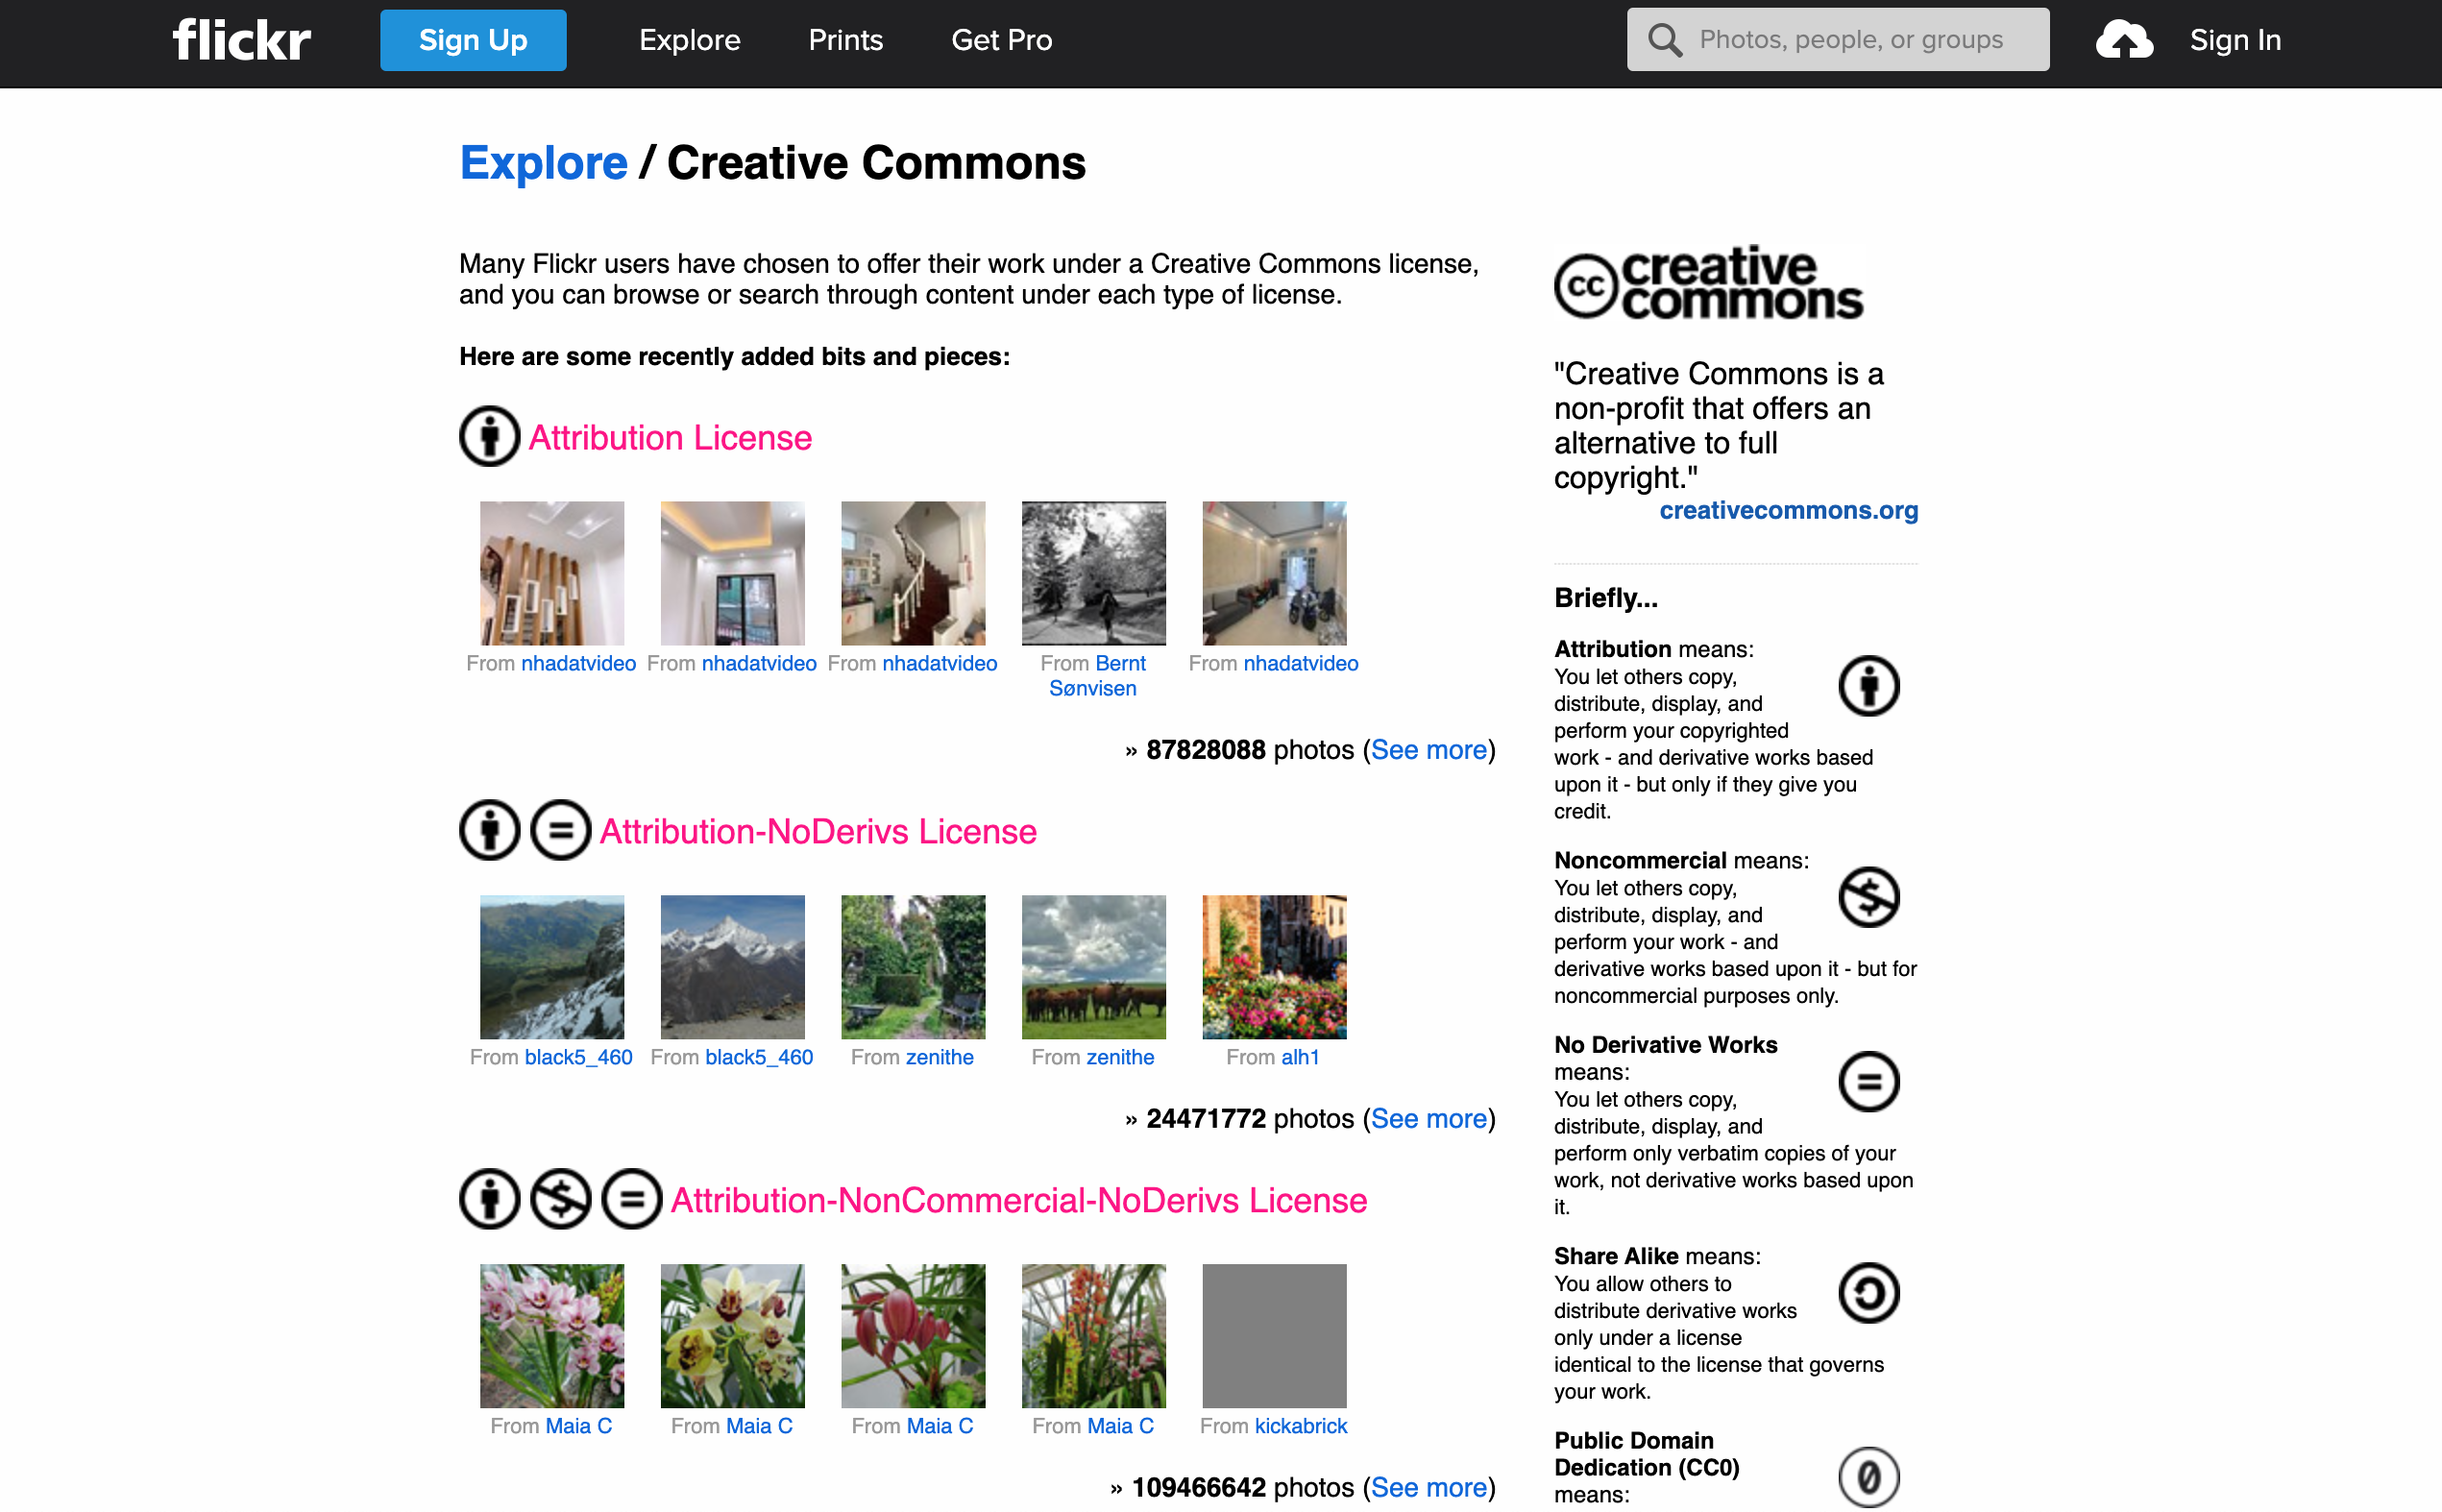 Example of Flickr's Creative Commons search/browse page